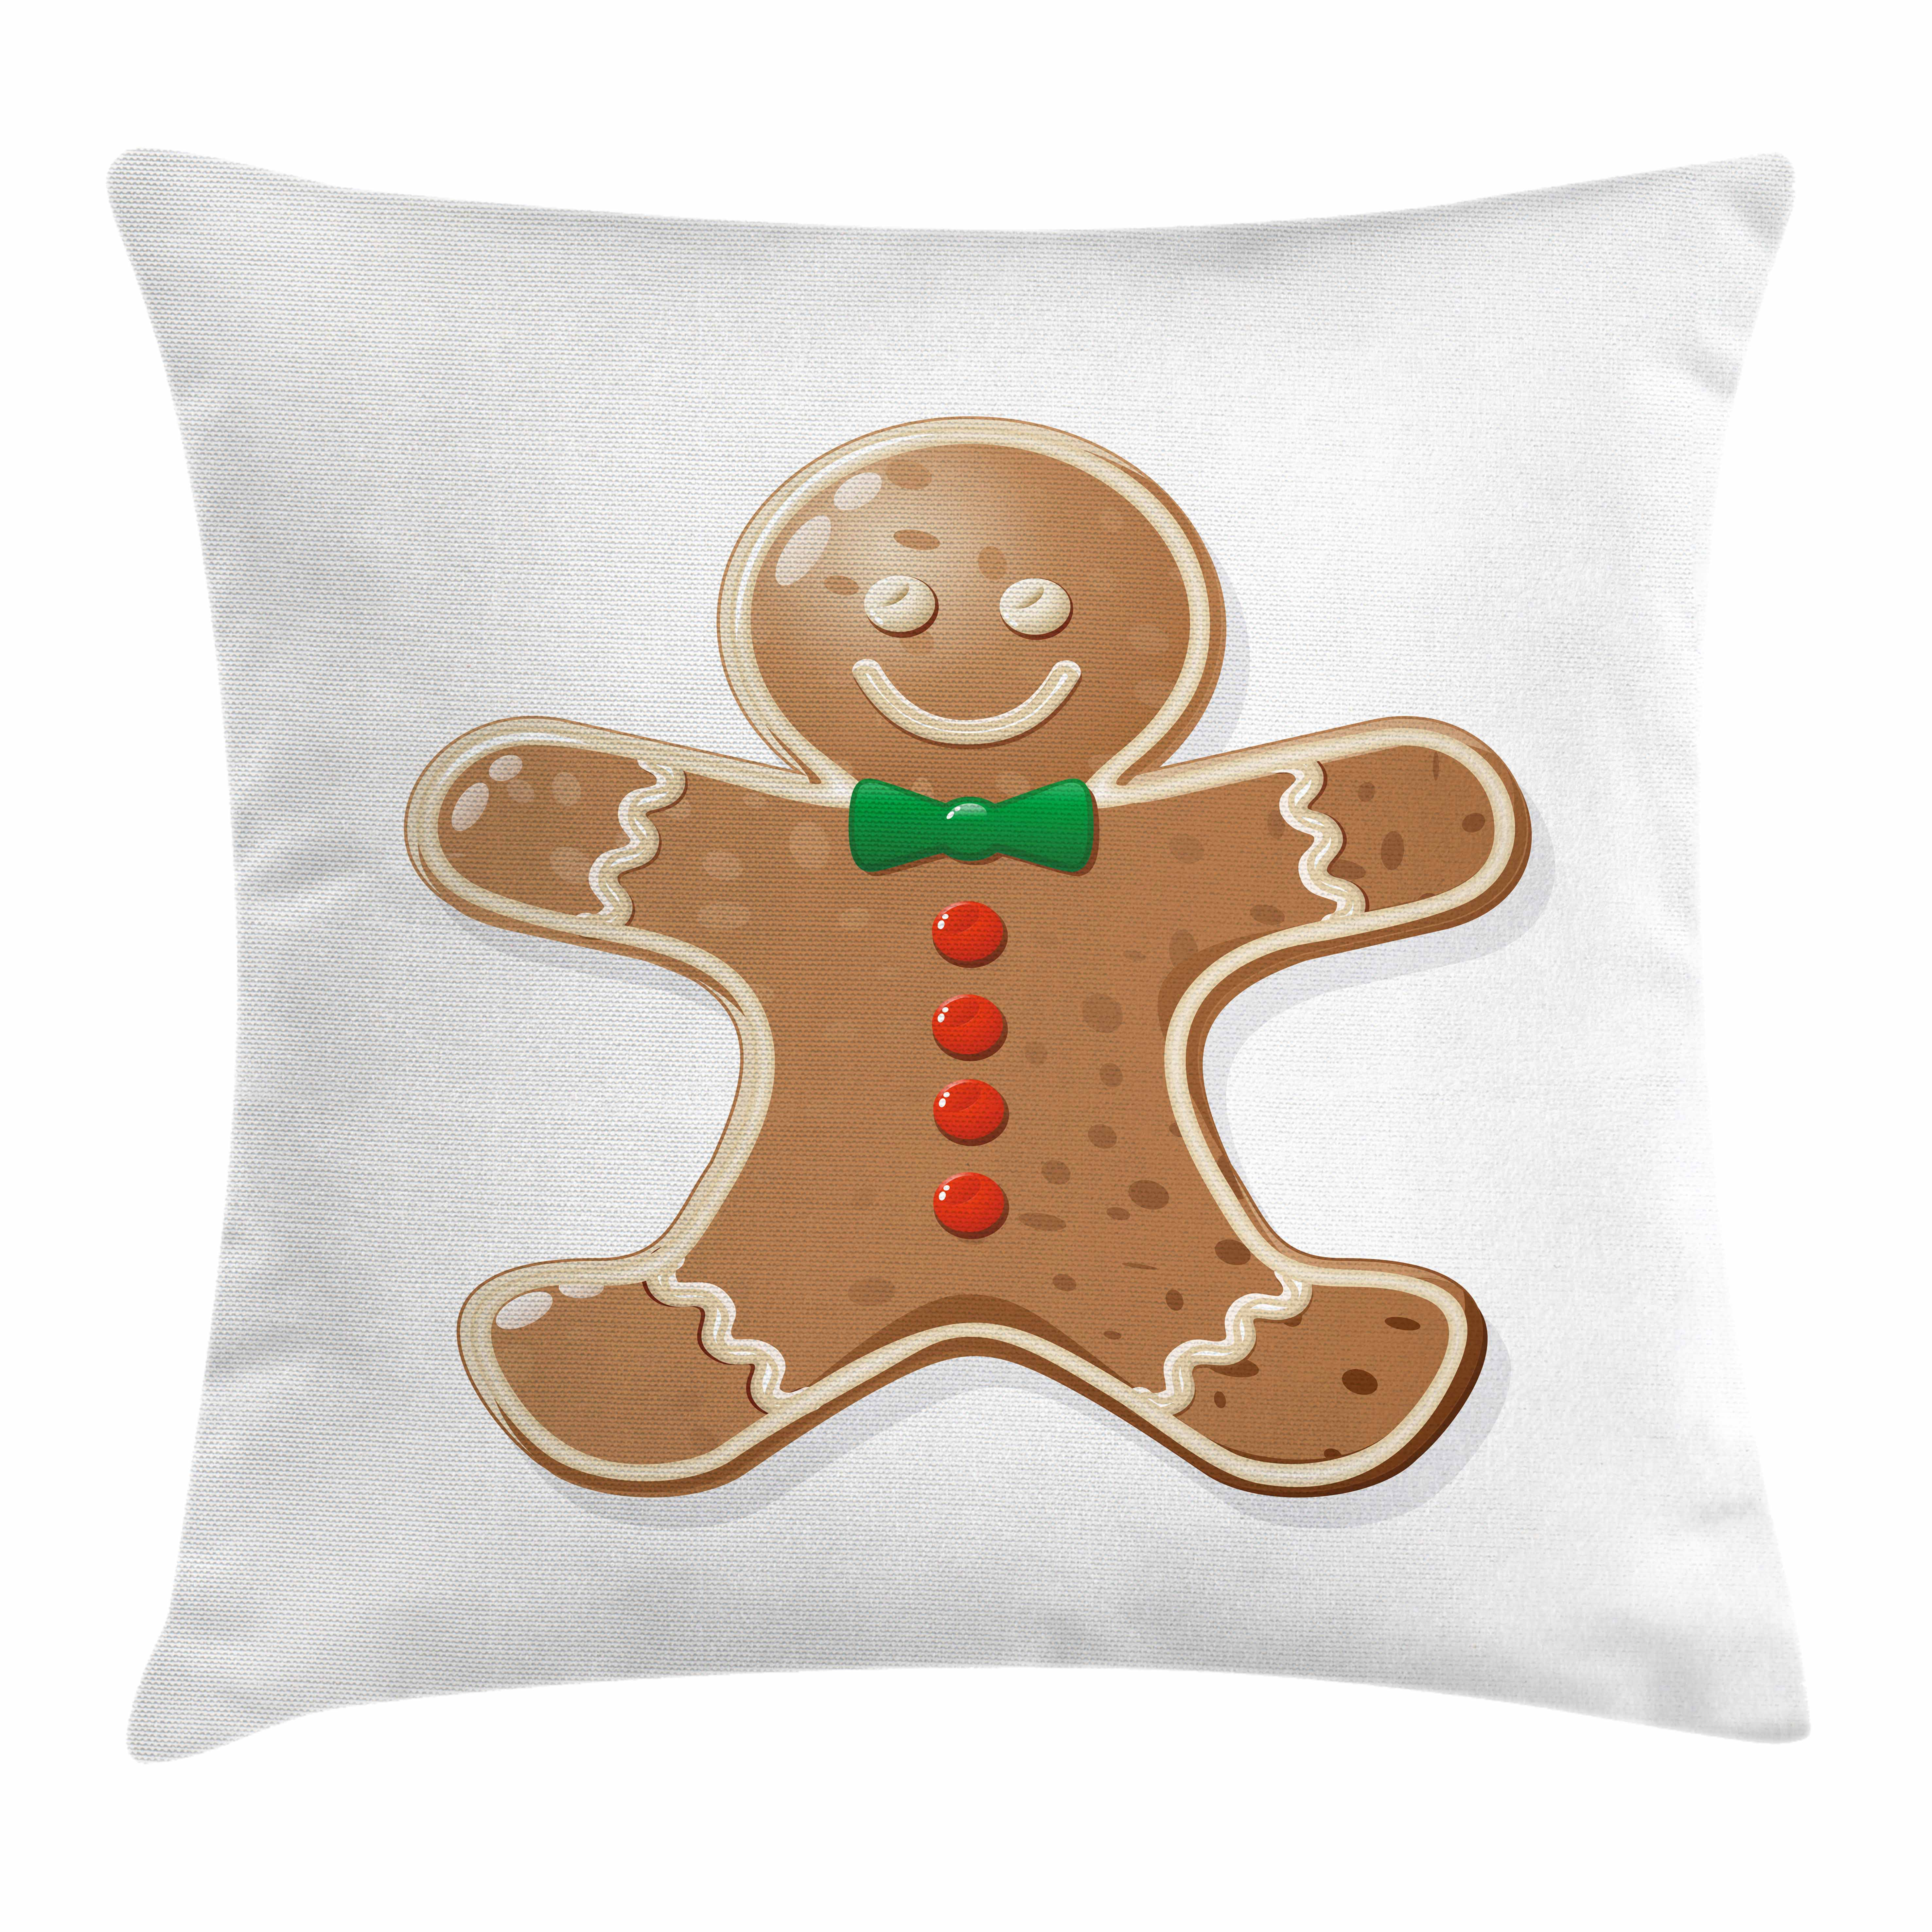 Gingerbread Man Throw Pillow Cushion Cover, Iconic Seasonal Baked Pastry Sugary Treats for Kids Joyous Fun Xmas, Decorative Square Accent Pillow Case, 16 X 16 Inches, Caramel Red Green, by Ambesonne